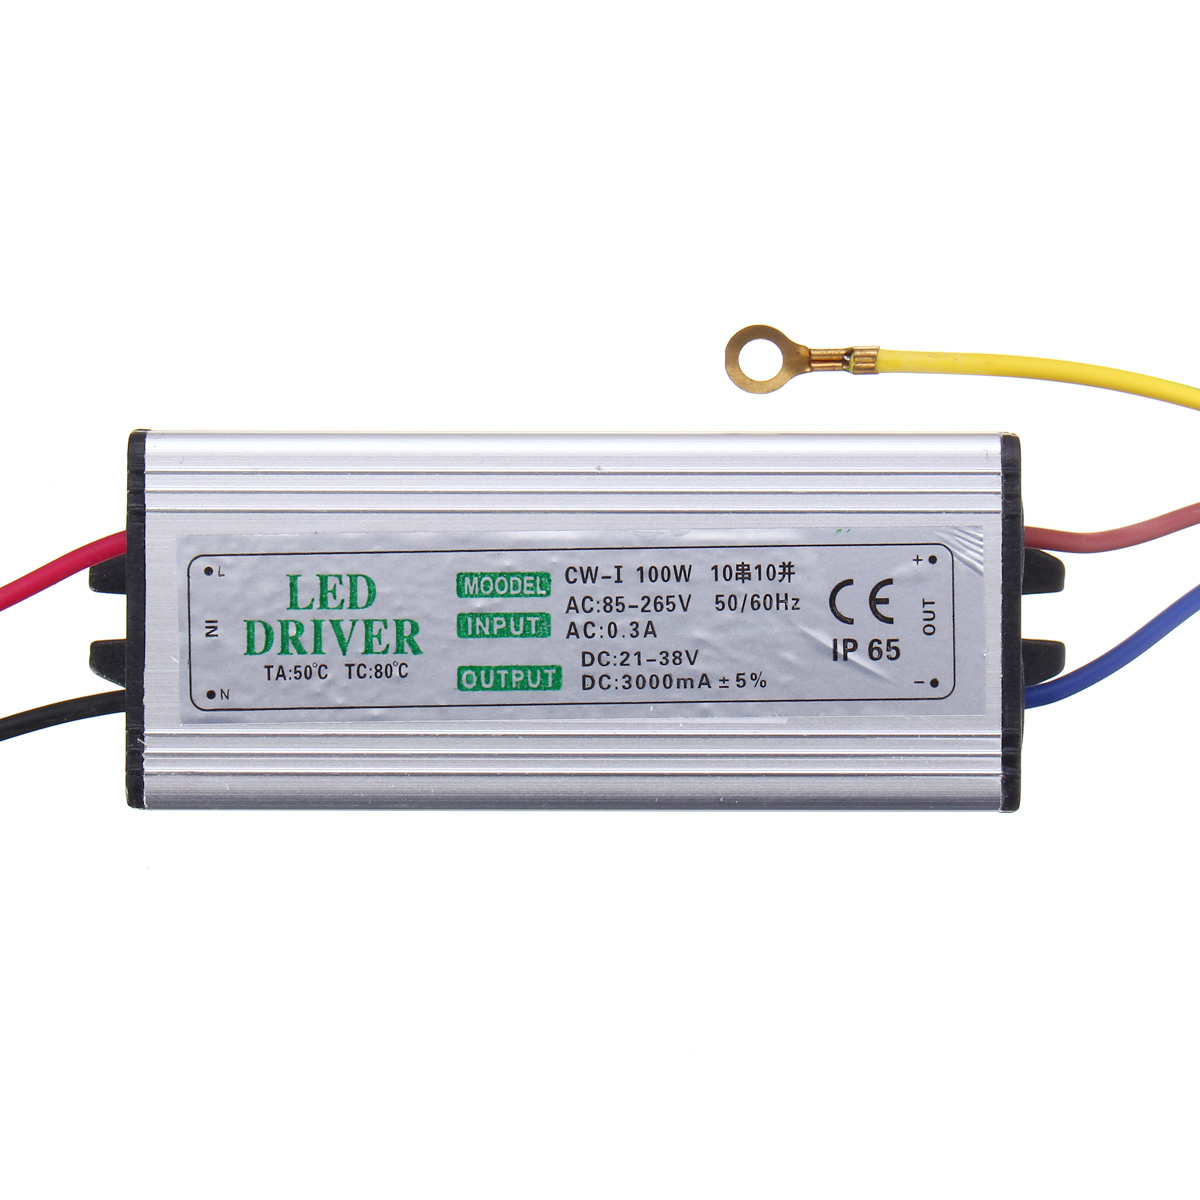 10w 20w 30w 50w 100w Waterproof High Power Supply Led Driver Ac85 12v Circuit 265v